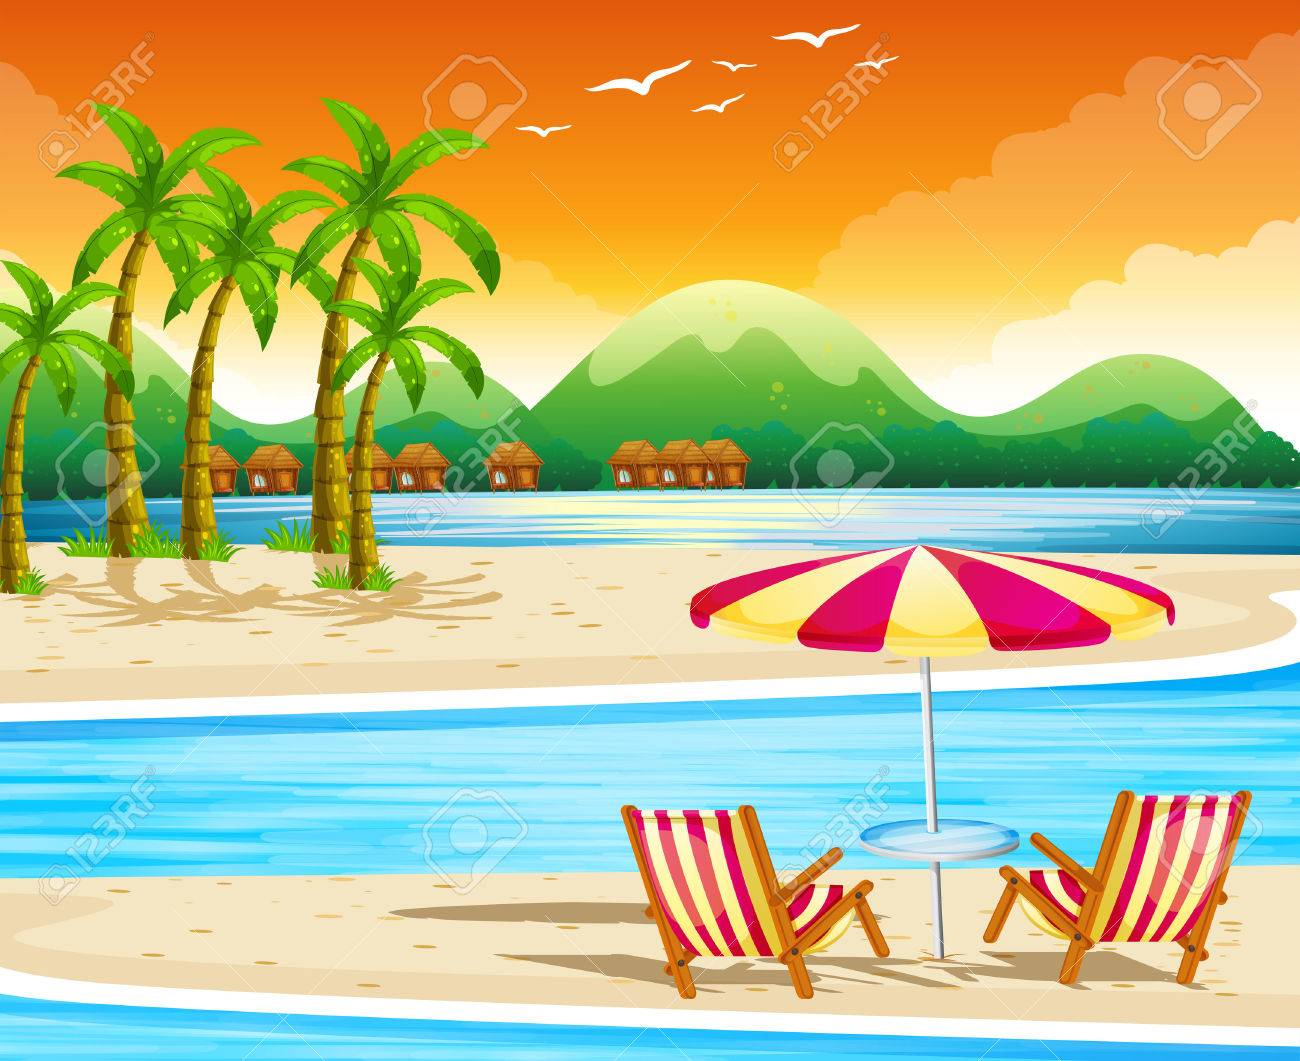 Beach scene with chairs and umbrella illustration.